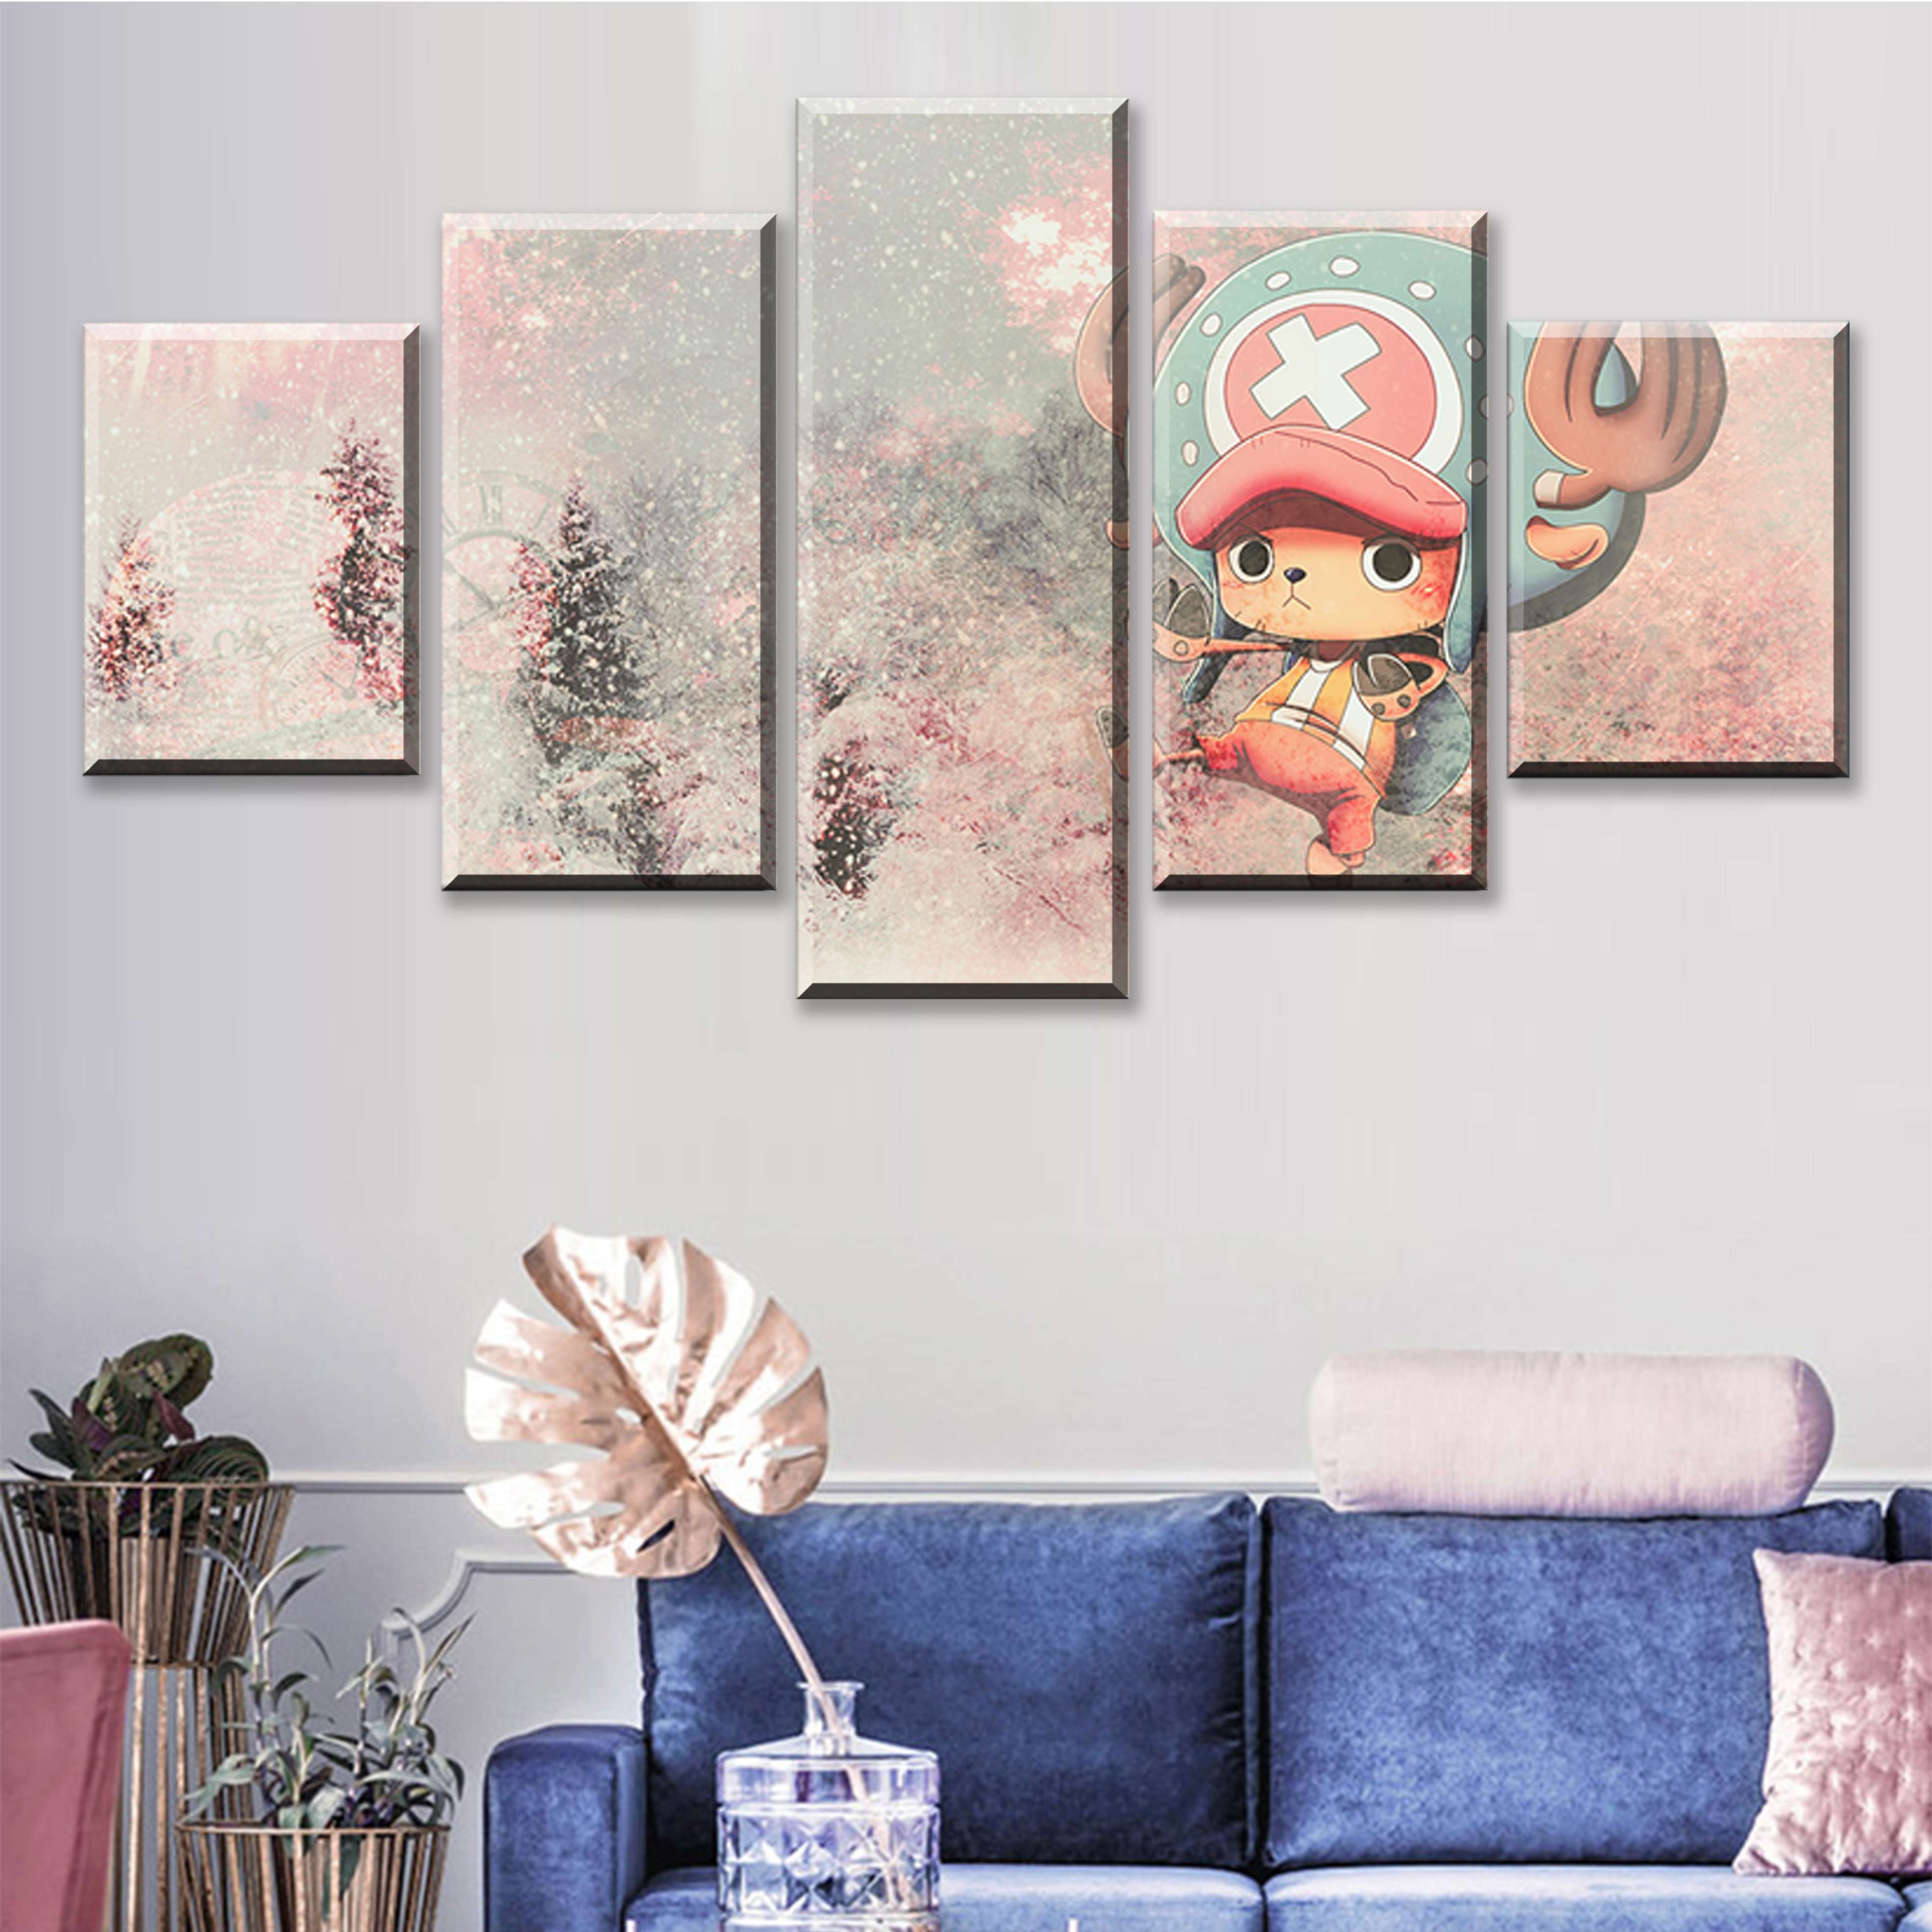 5 Piece Abstract Art Cartoon Pictures Tony Tony Chopper Straw Hat Pirate ONE PIECE Anime Poster Canvas Paintings for Wall Decor in Painting Calligraphy from Home Garden